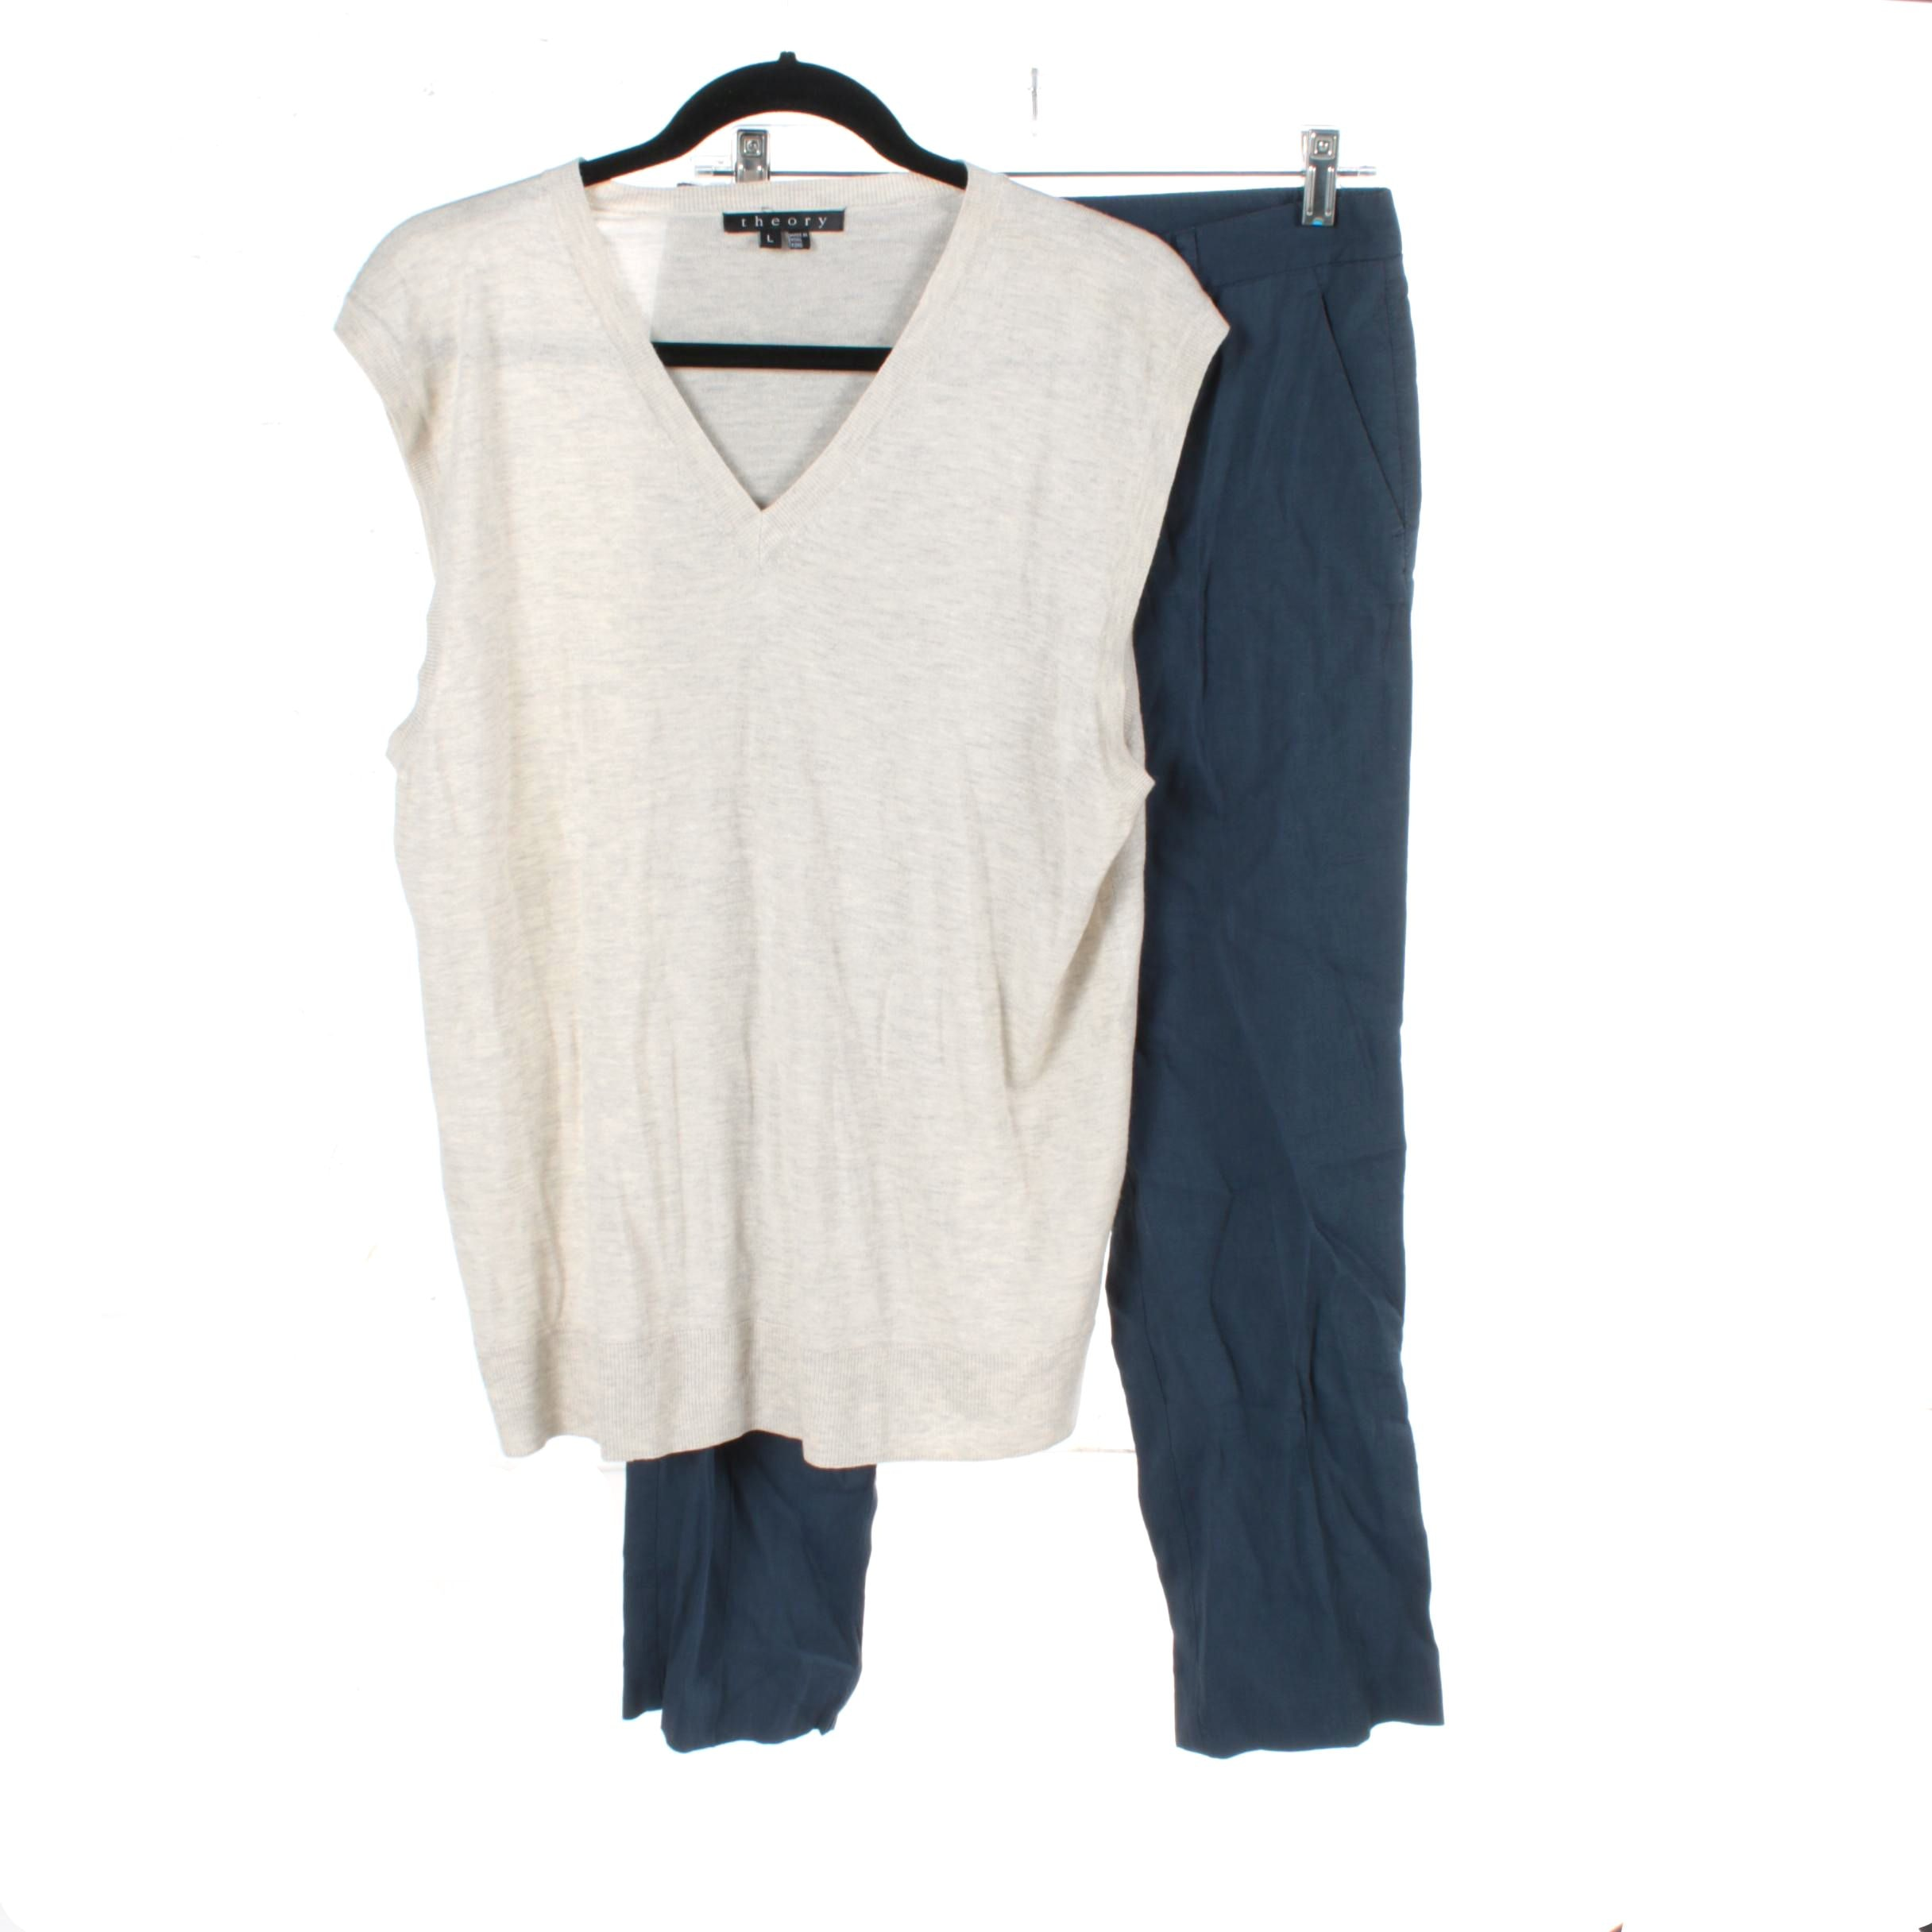 Women's Theory Cream and Navy Separates